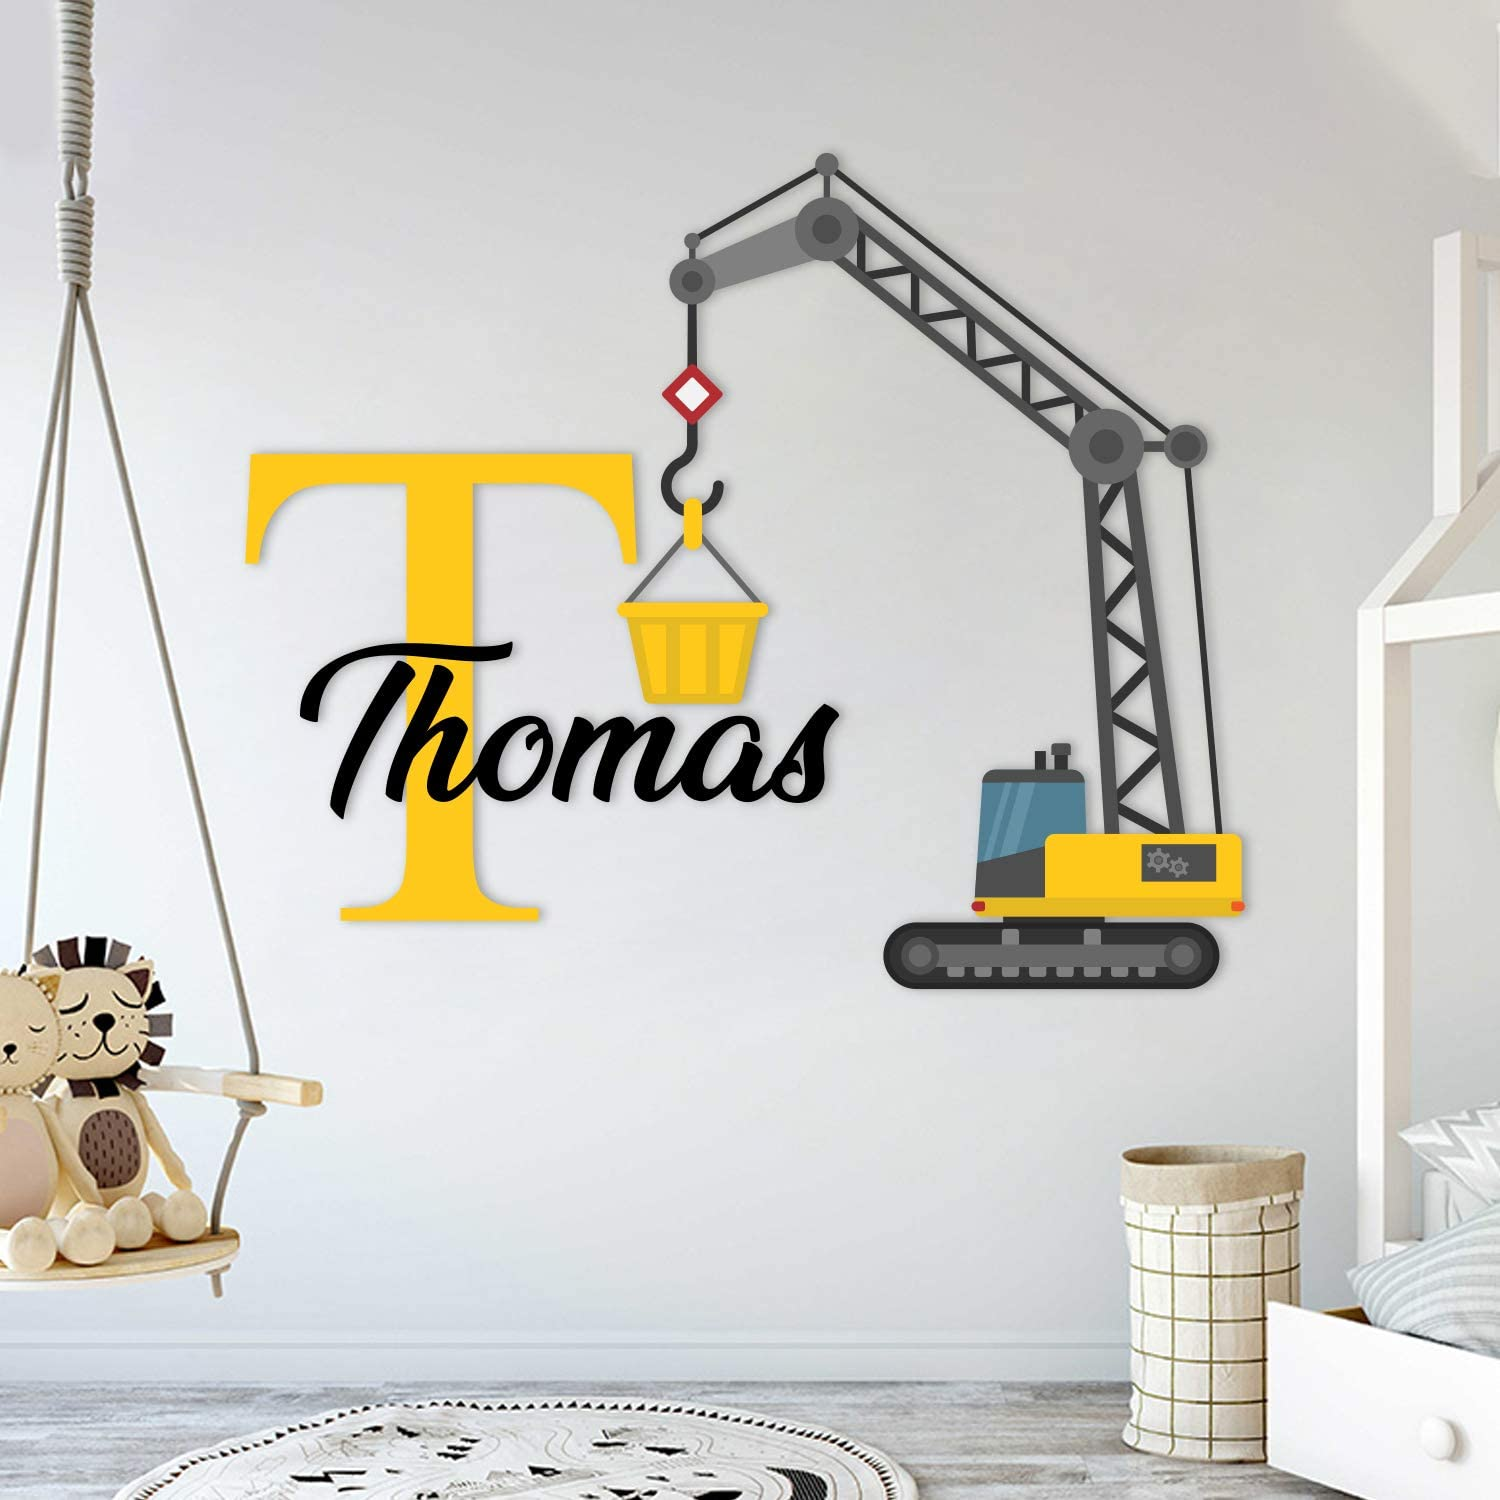 "Custom Name & Initial Construction Crane - Prime Series - Baby Boy - Nursery Wall Decal for Baby Room Decorations - Mural Wall Decal Sticker for Home Children's Bedroom (Wide 32""x27"" Height)"